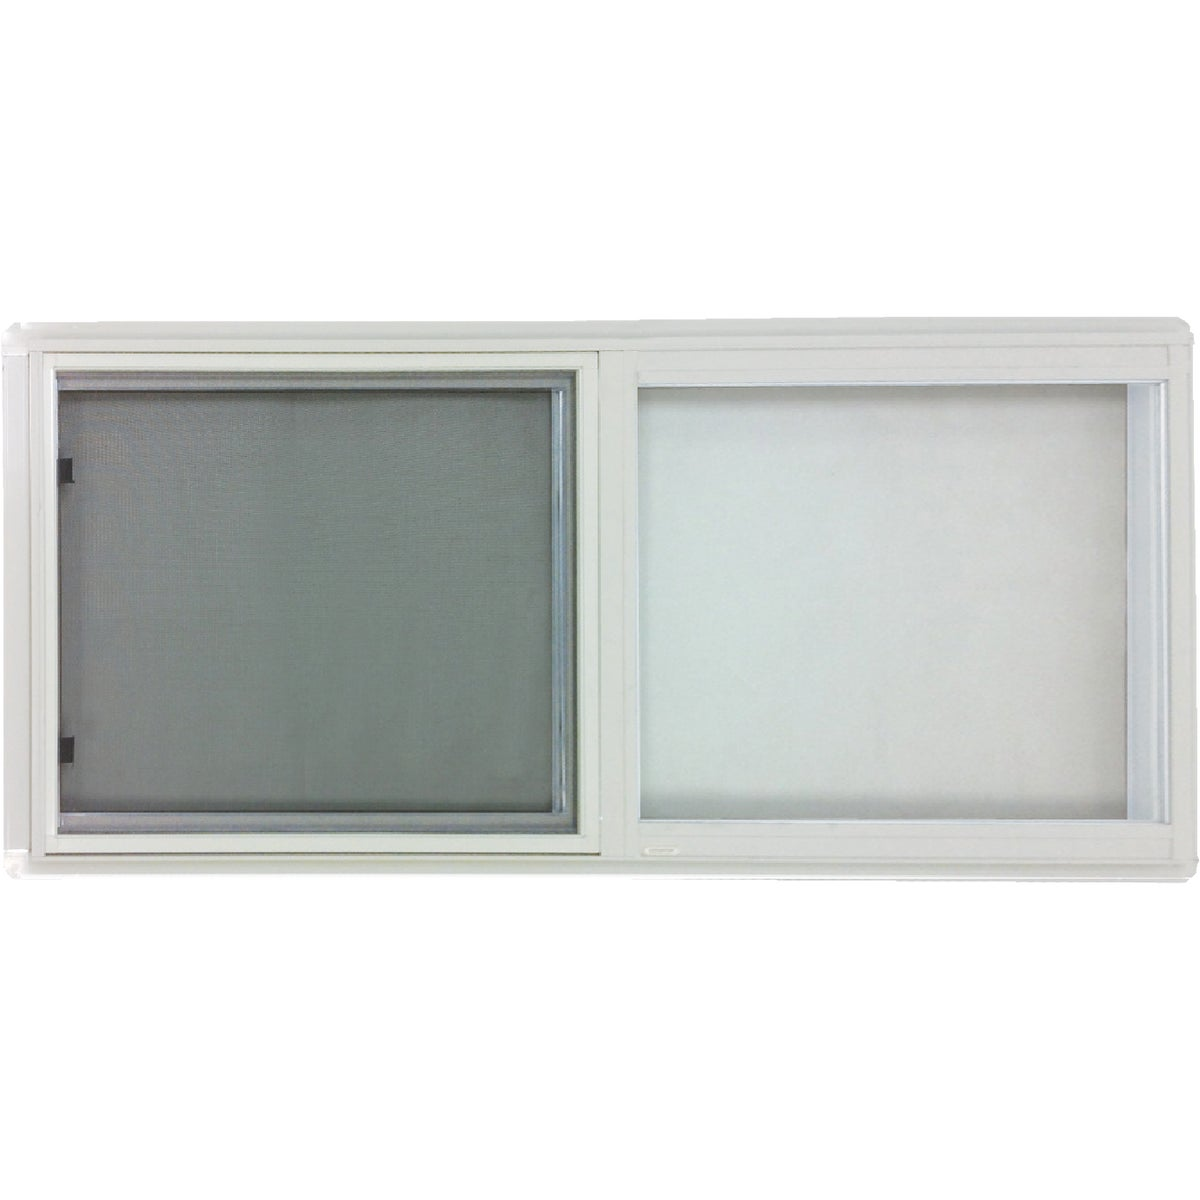 75W 46X22 SLIDING WINDOW